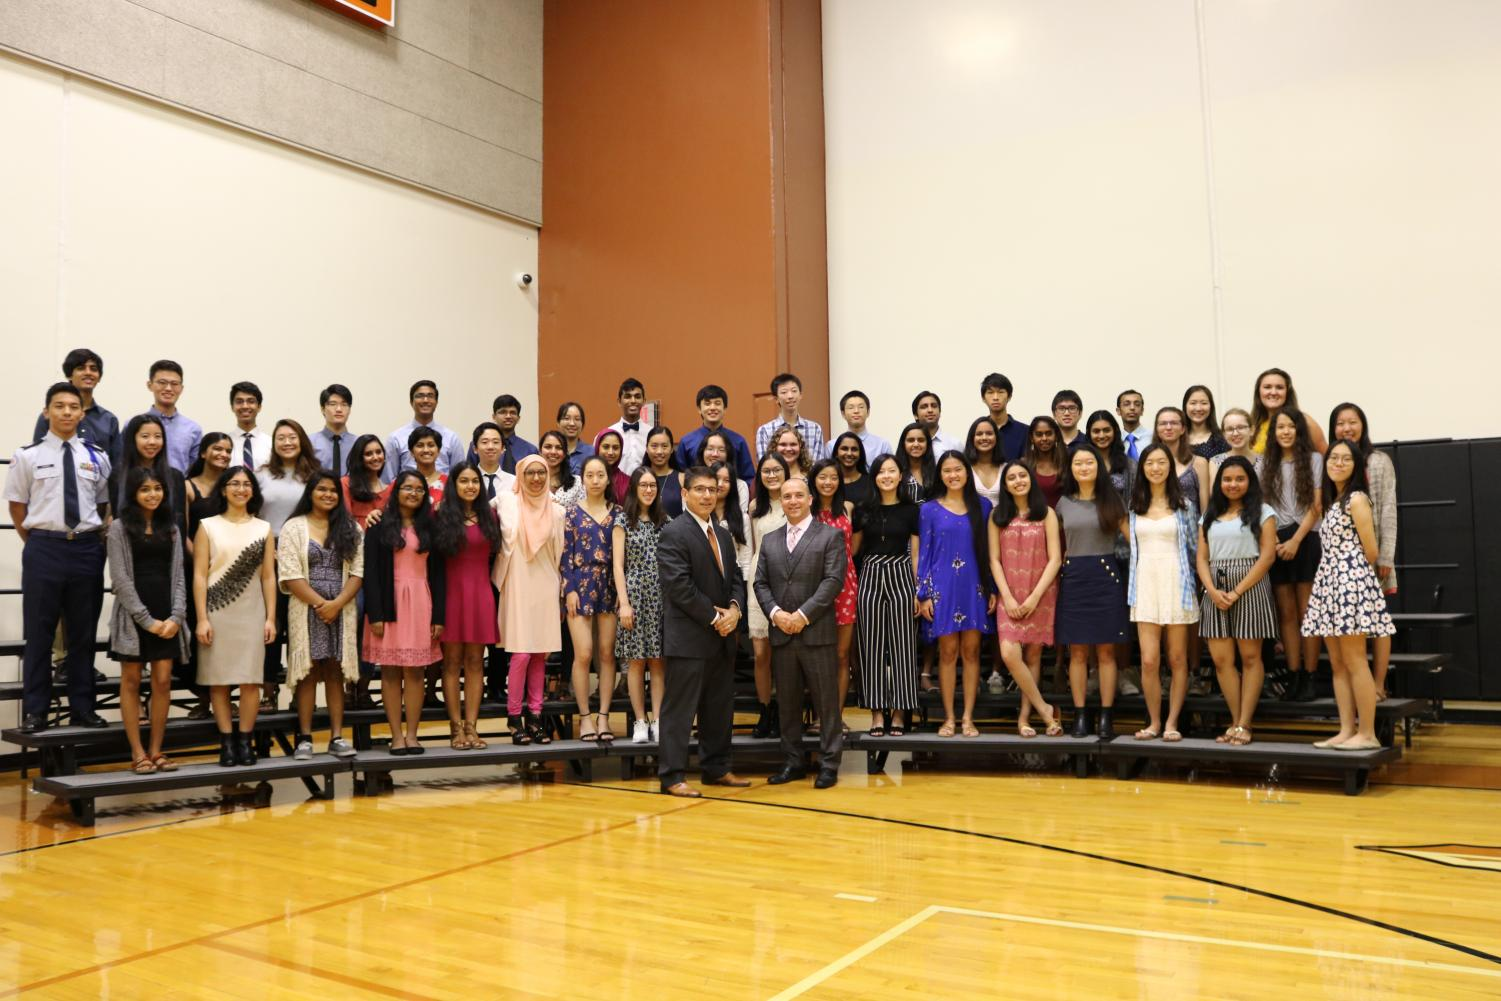 National+Merit+Semifinalists+pose+for+a+group+photo.